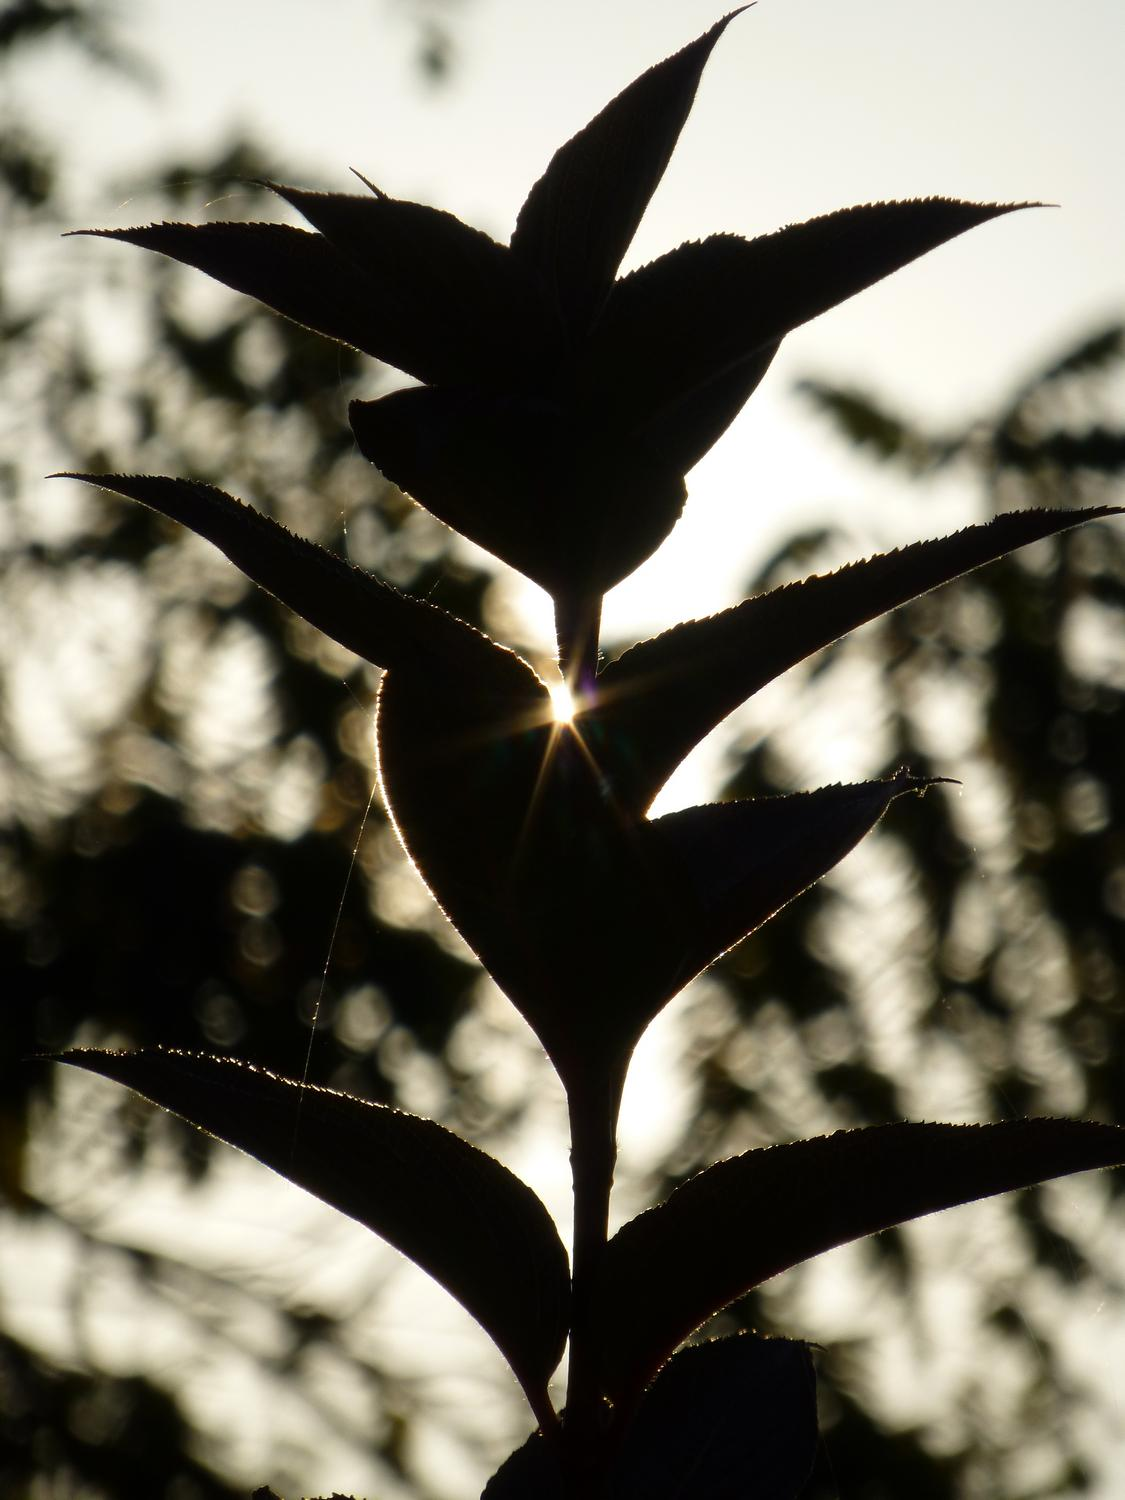 - Sun sparkle through a plant <br>--- Click to see ORIGINAL --- - Panasonic DMC-ZS20 - Tony Karp, design, art, photography, techno-impressionist, techno-impressionism, aerial photography , drone , drones , dji , mavic pro , video , 3D printing - Books -